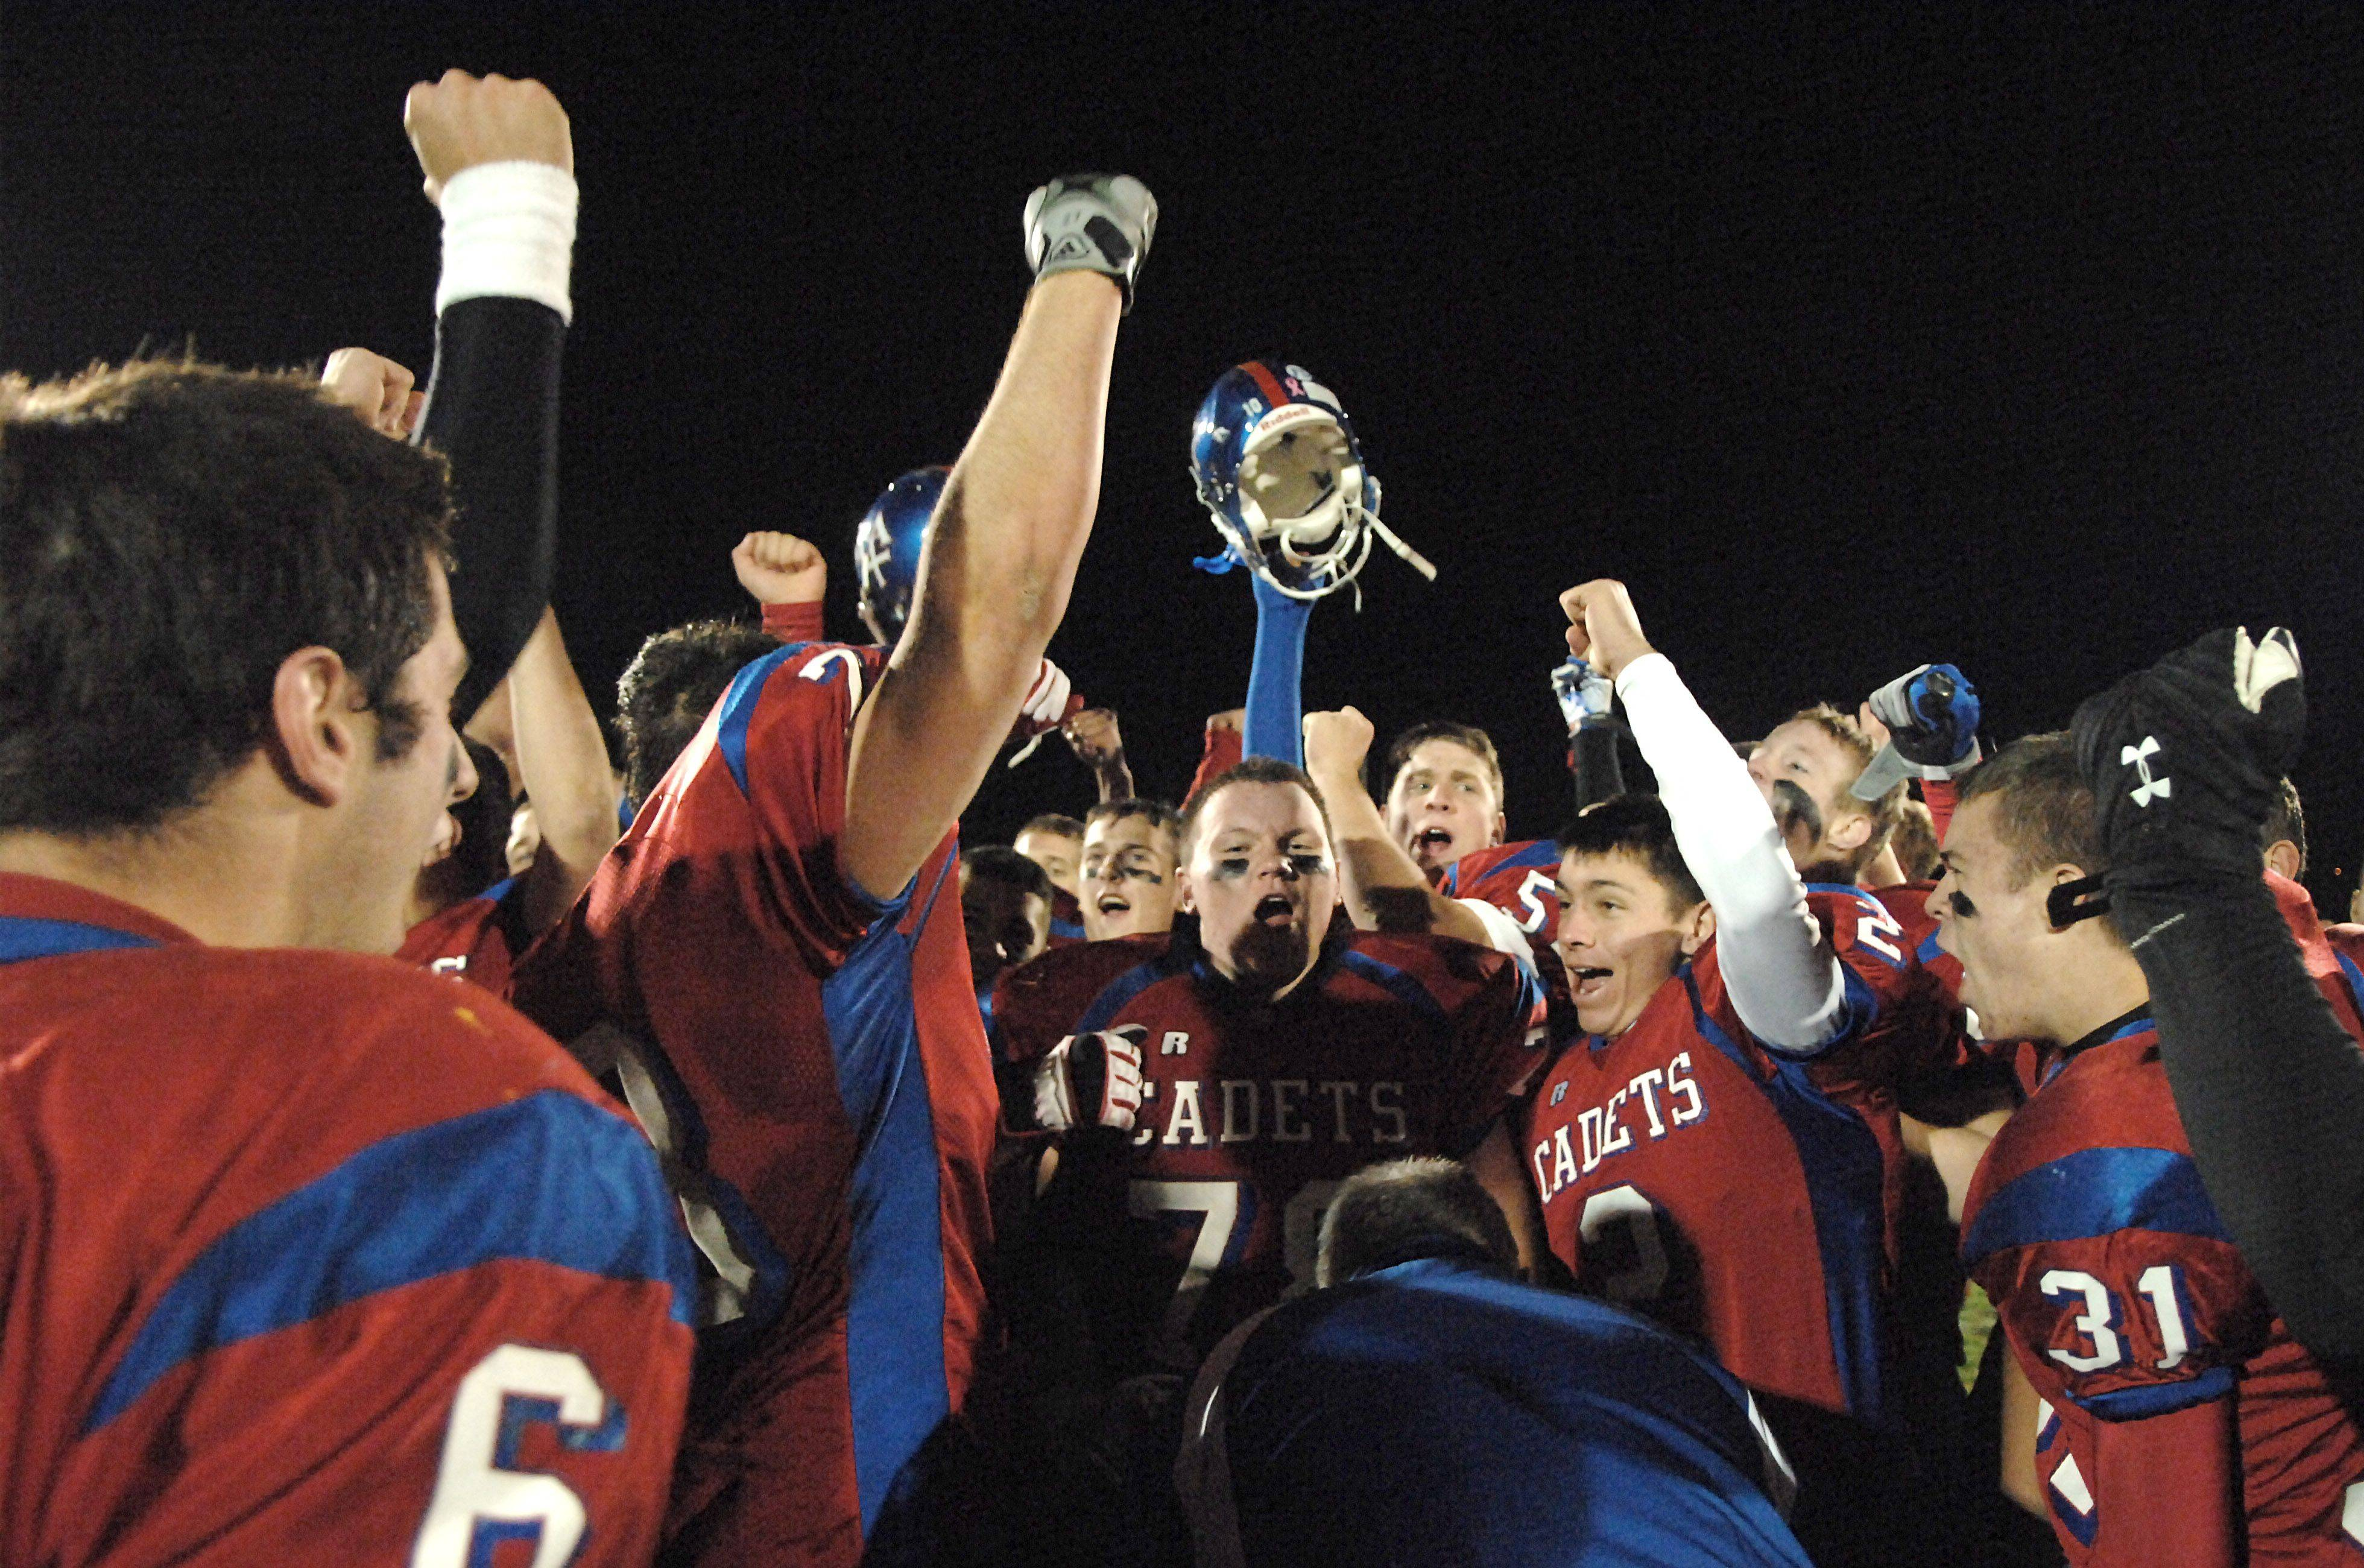 Marmion celebrates their playoff win over Thorton Fractional North on Friday, October 29.